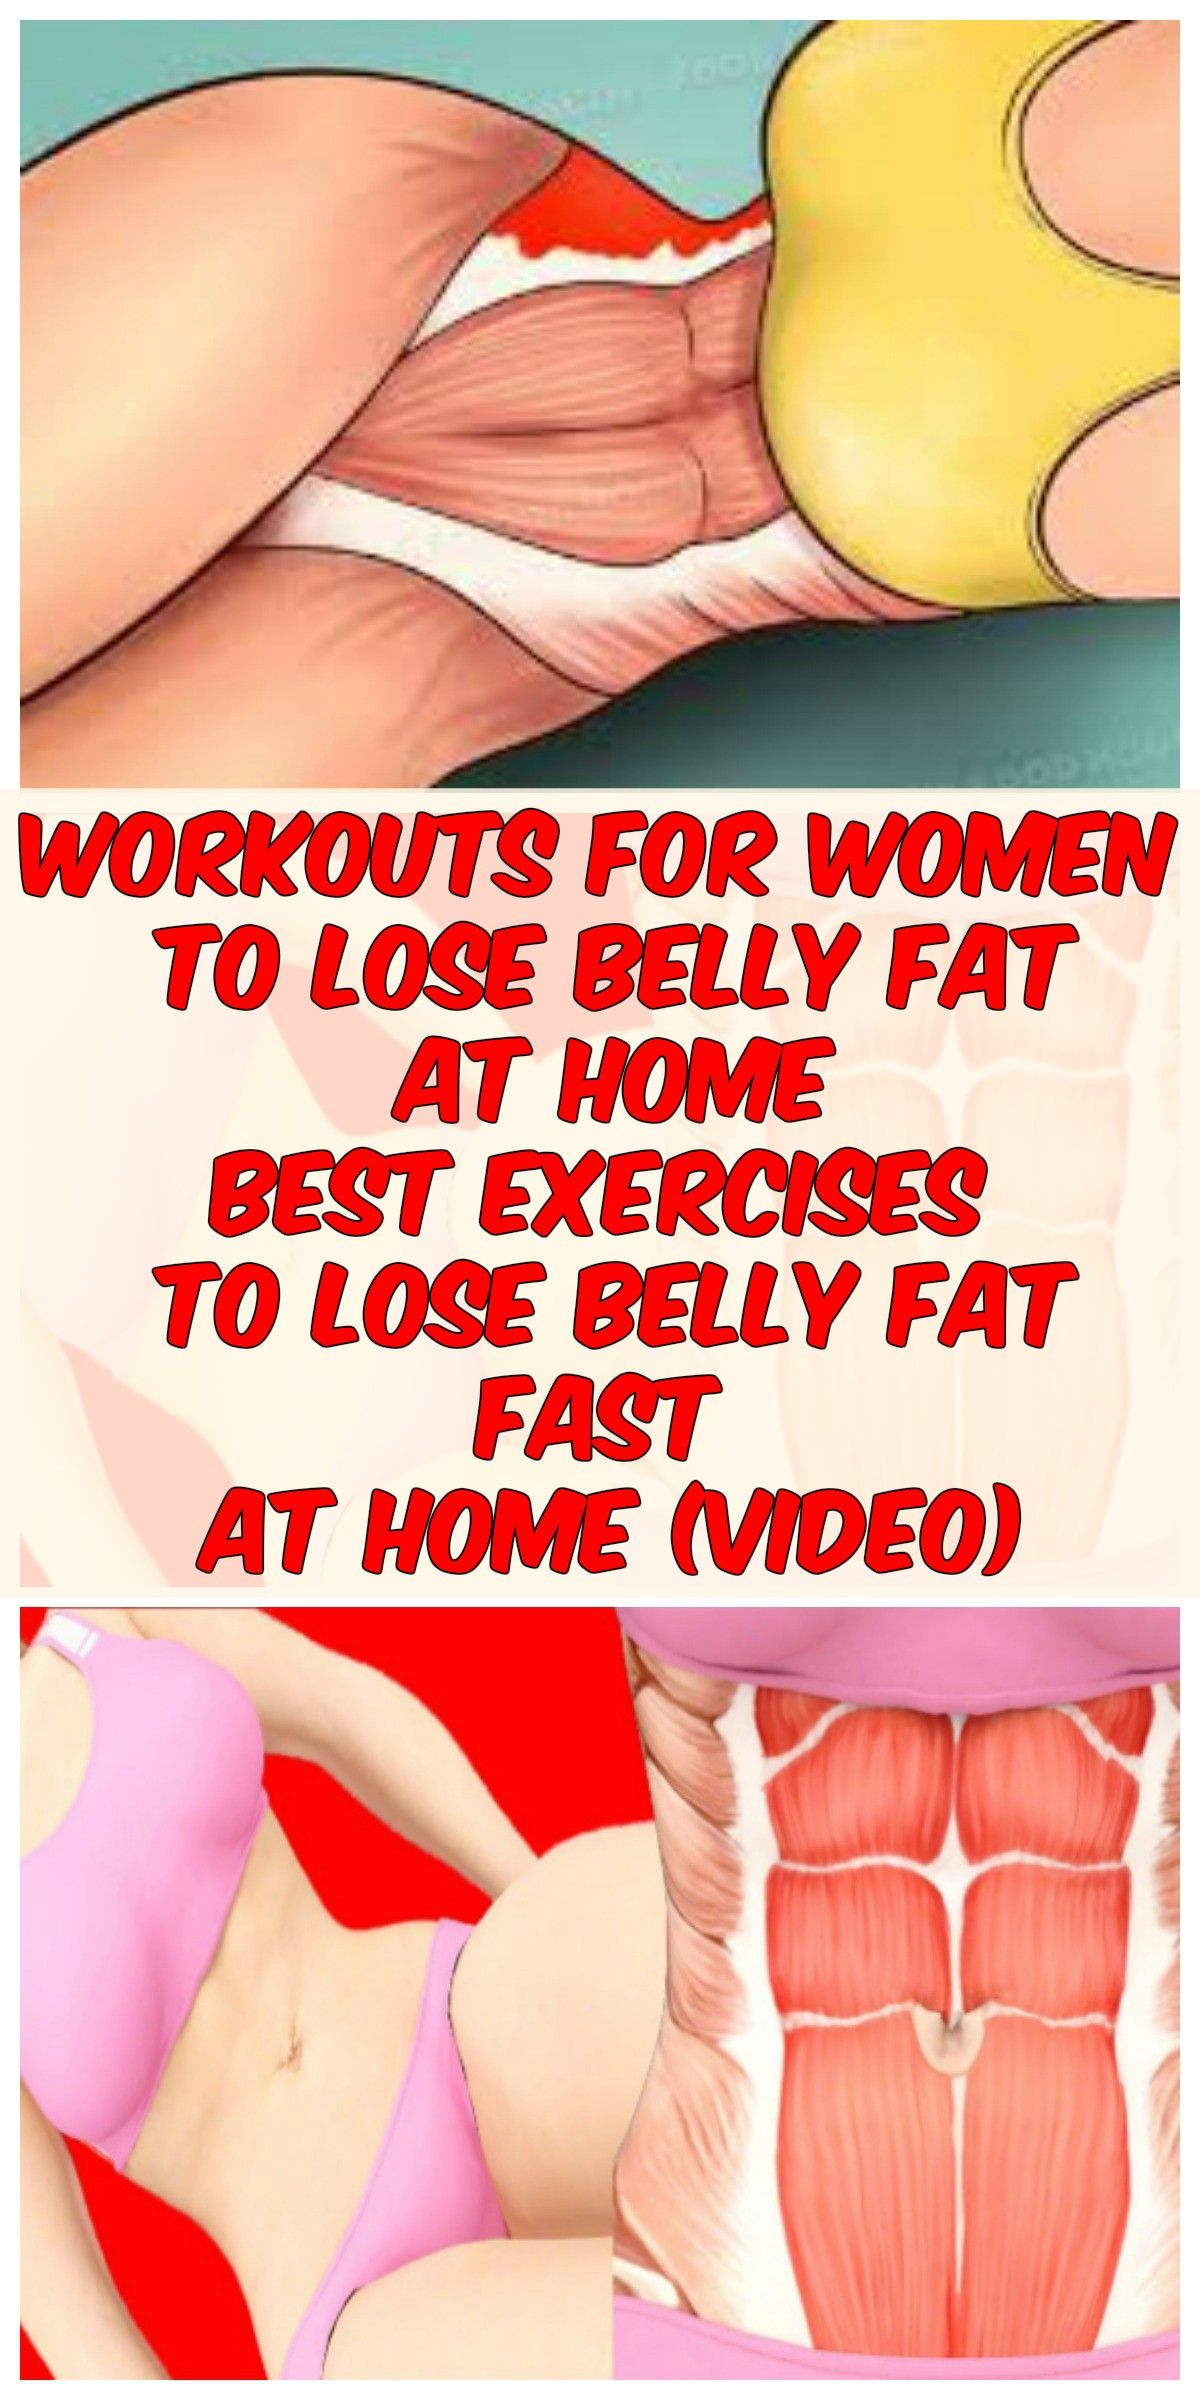 How to lose 2 inches of belly fat fast